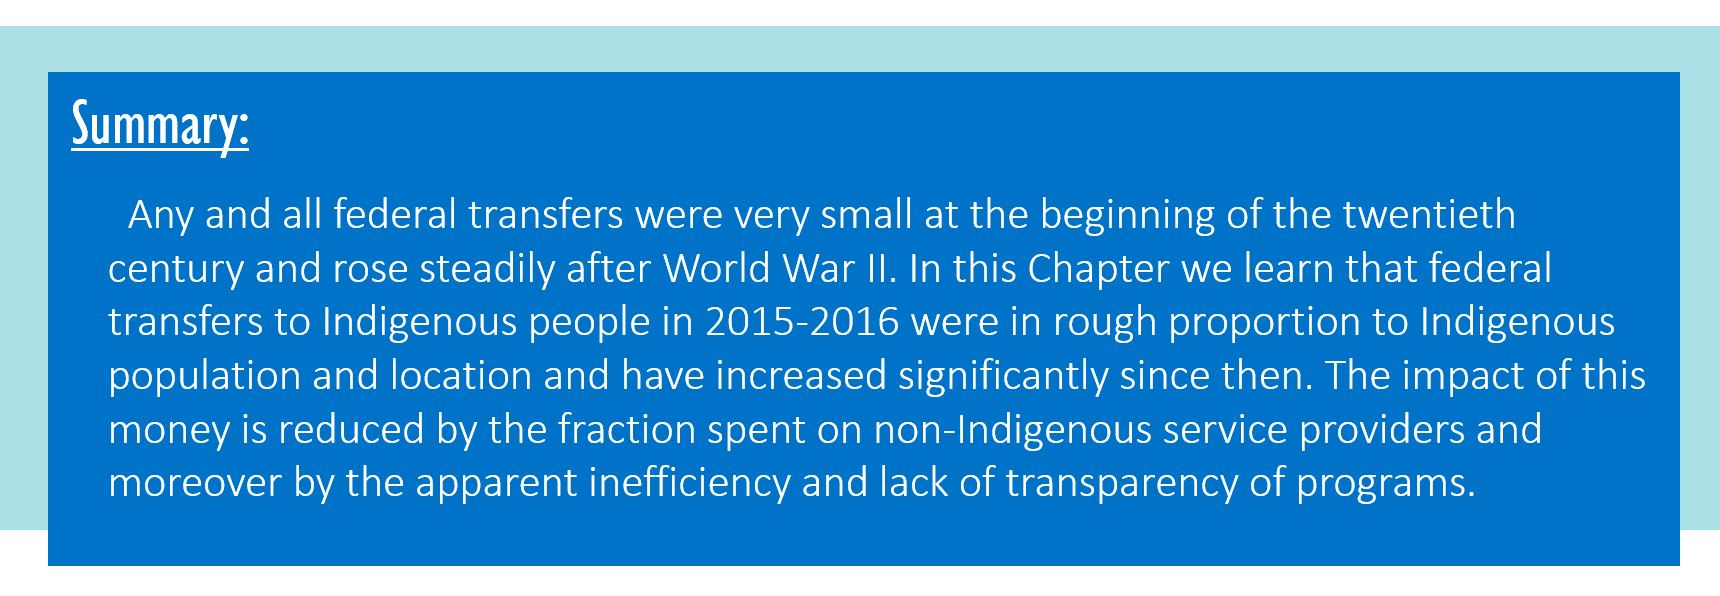 Summary: Any and all federal transfers were very small at the beginning of the twentieth century, but they rose steadily after World War II. In this Chapter we learn that federal transfers to Indigenous people in 2015-2016 were in rough proportion to Indigenous population and location and have increased significantly since then. The impact of this money is reduced by the fraction spent on non-Indigenous service providers and moreover by the apparent inefficiency and lack of transparency of programs.